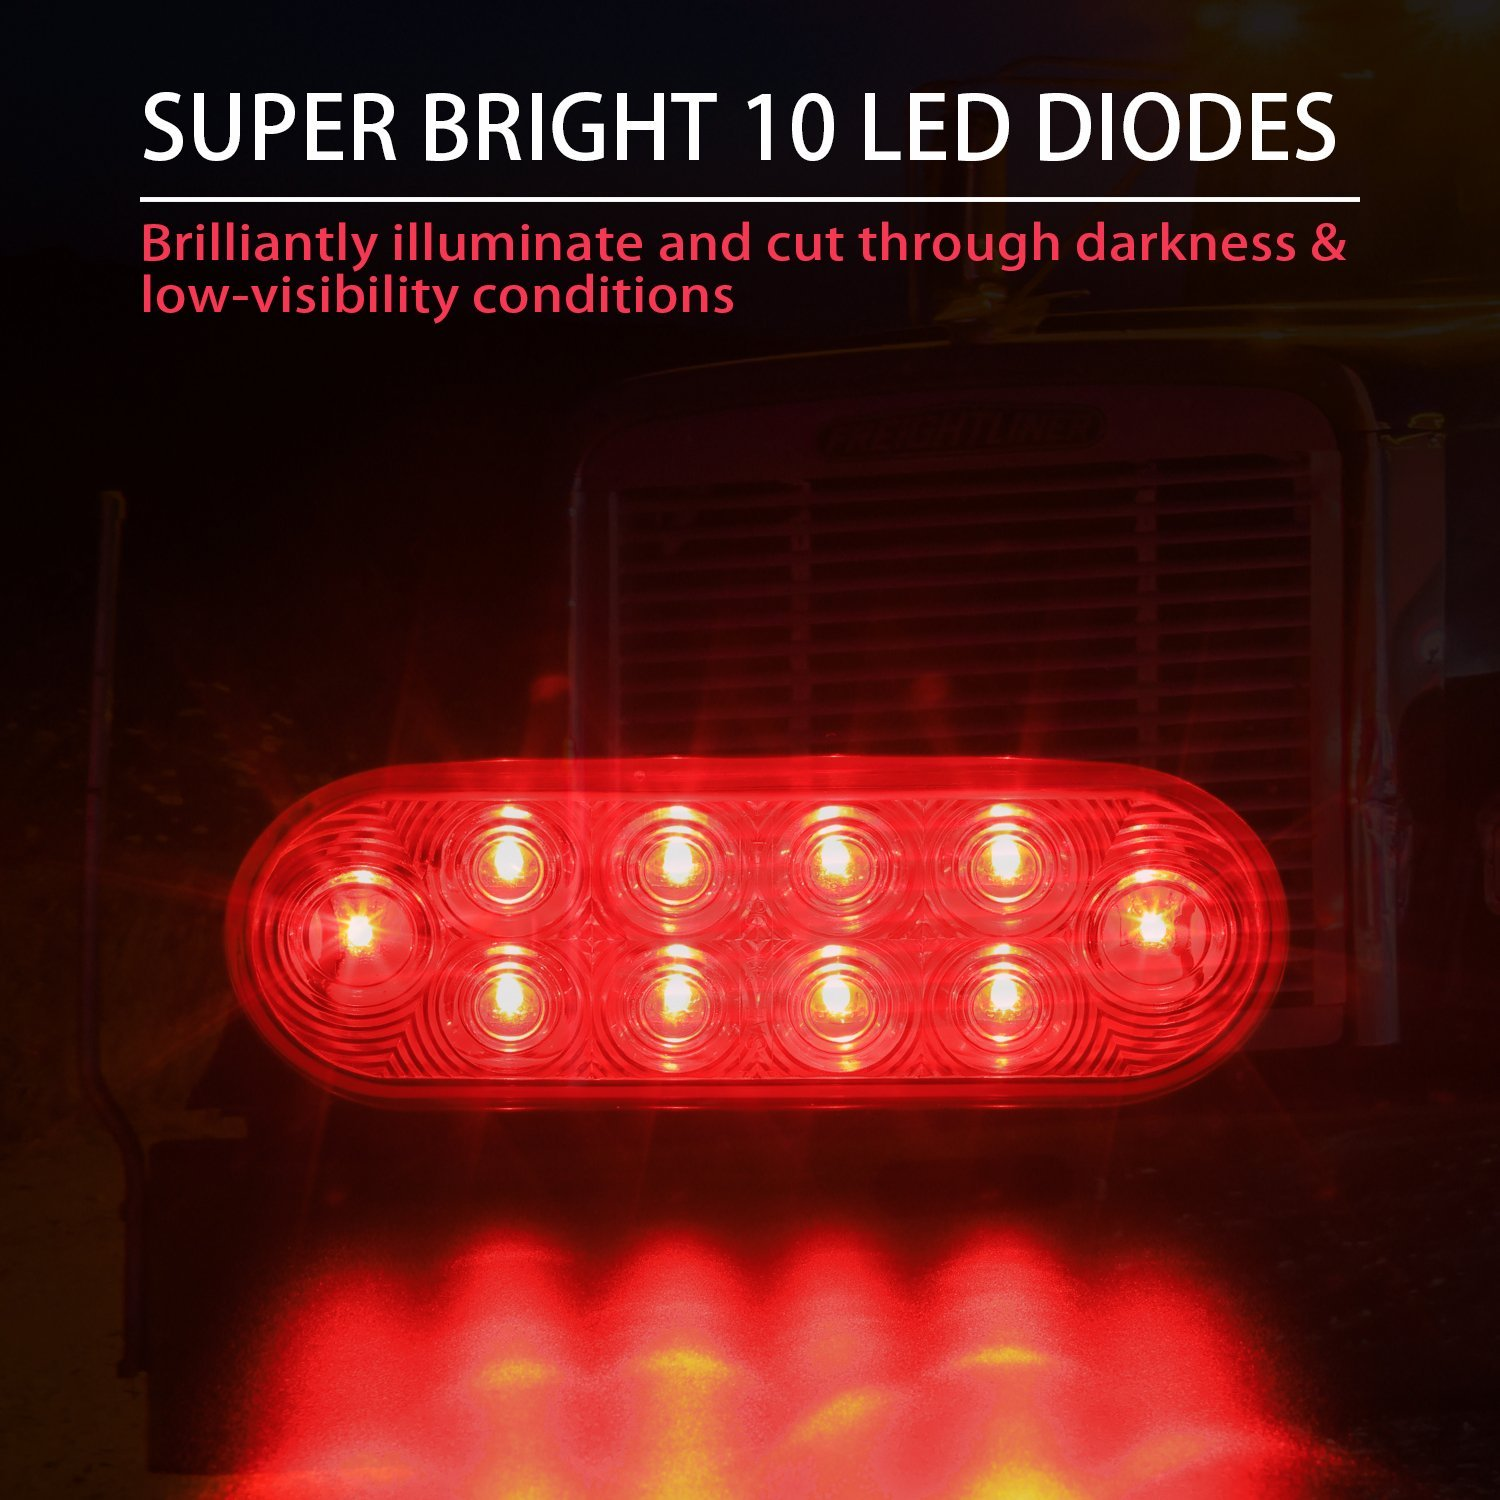 6 Oval Trailer Tail Lights 2pc Red Taillights Also Led Along With Wiring Kit 10 Diodes Of Bright Power Mount To Boat Trailers Truck Jeep Exteriors And